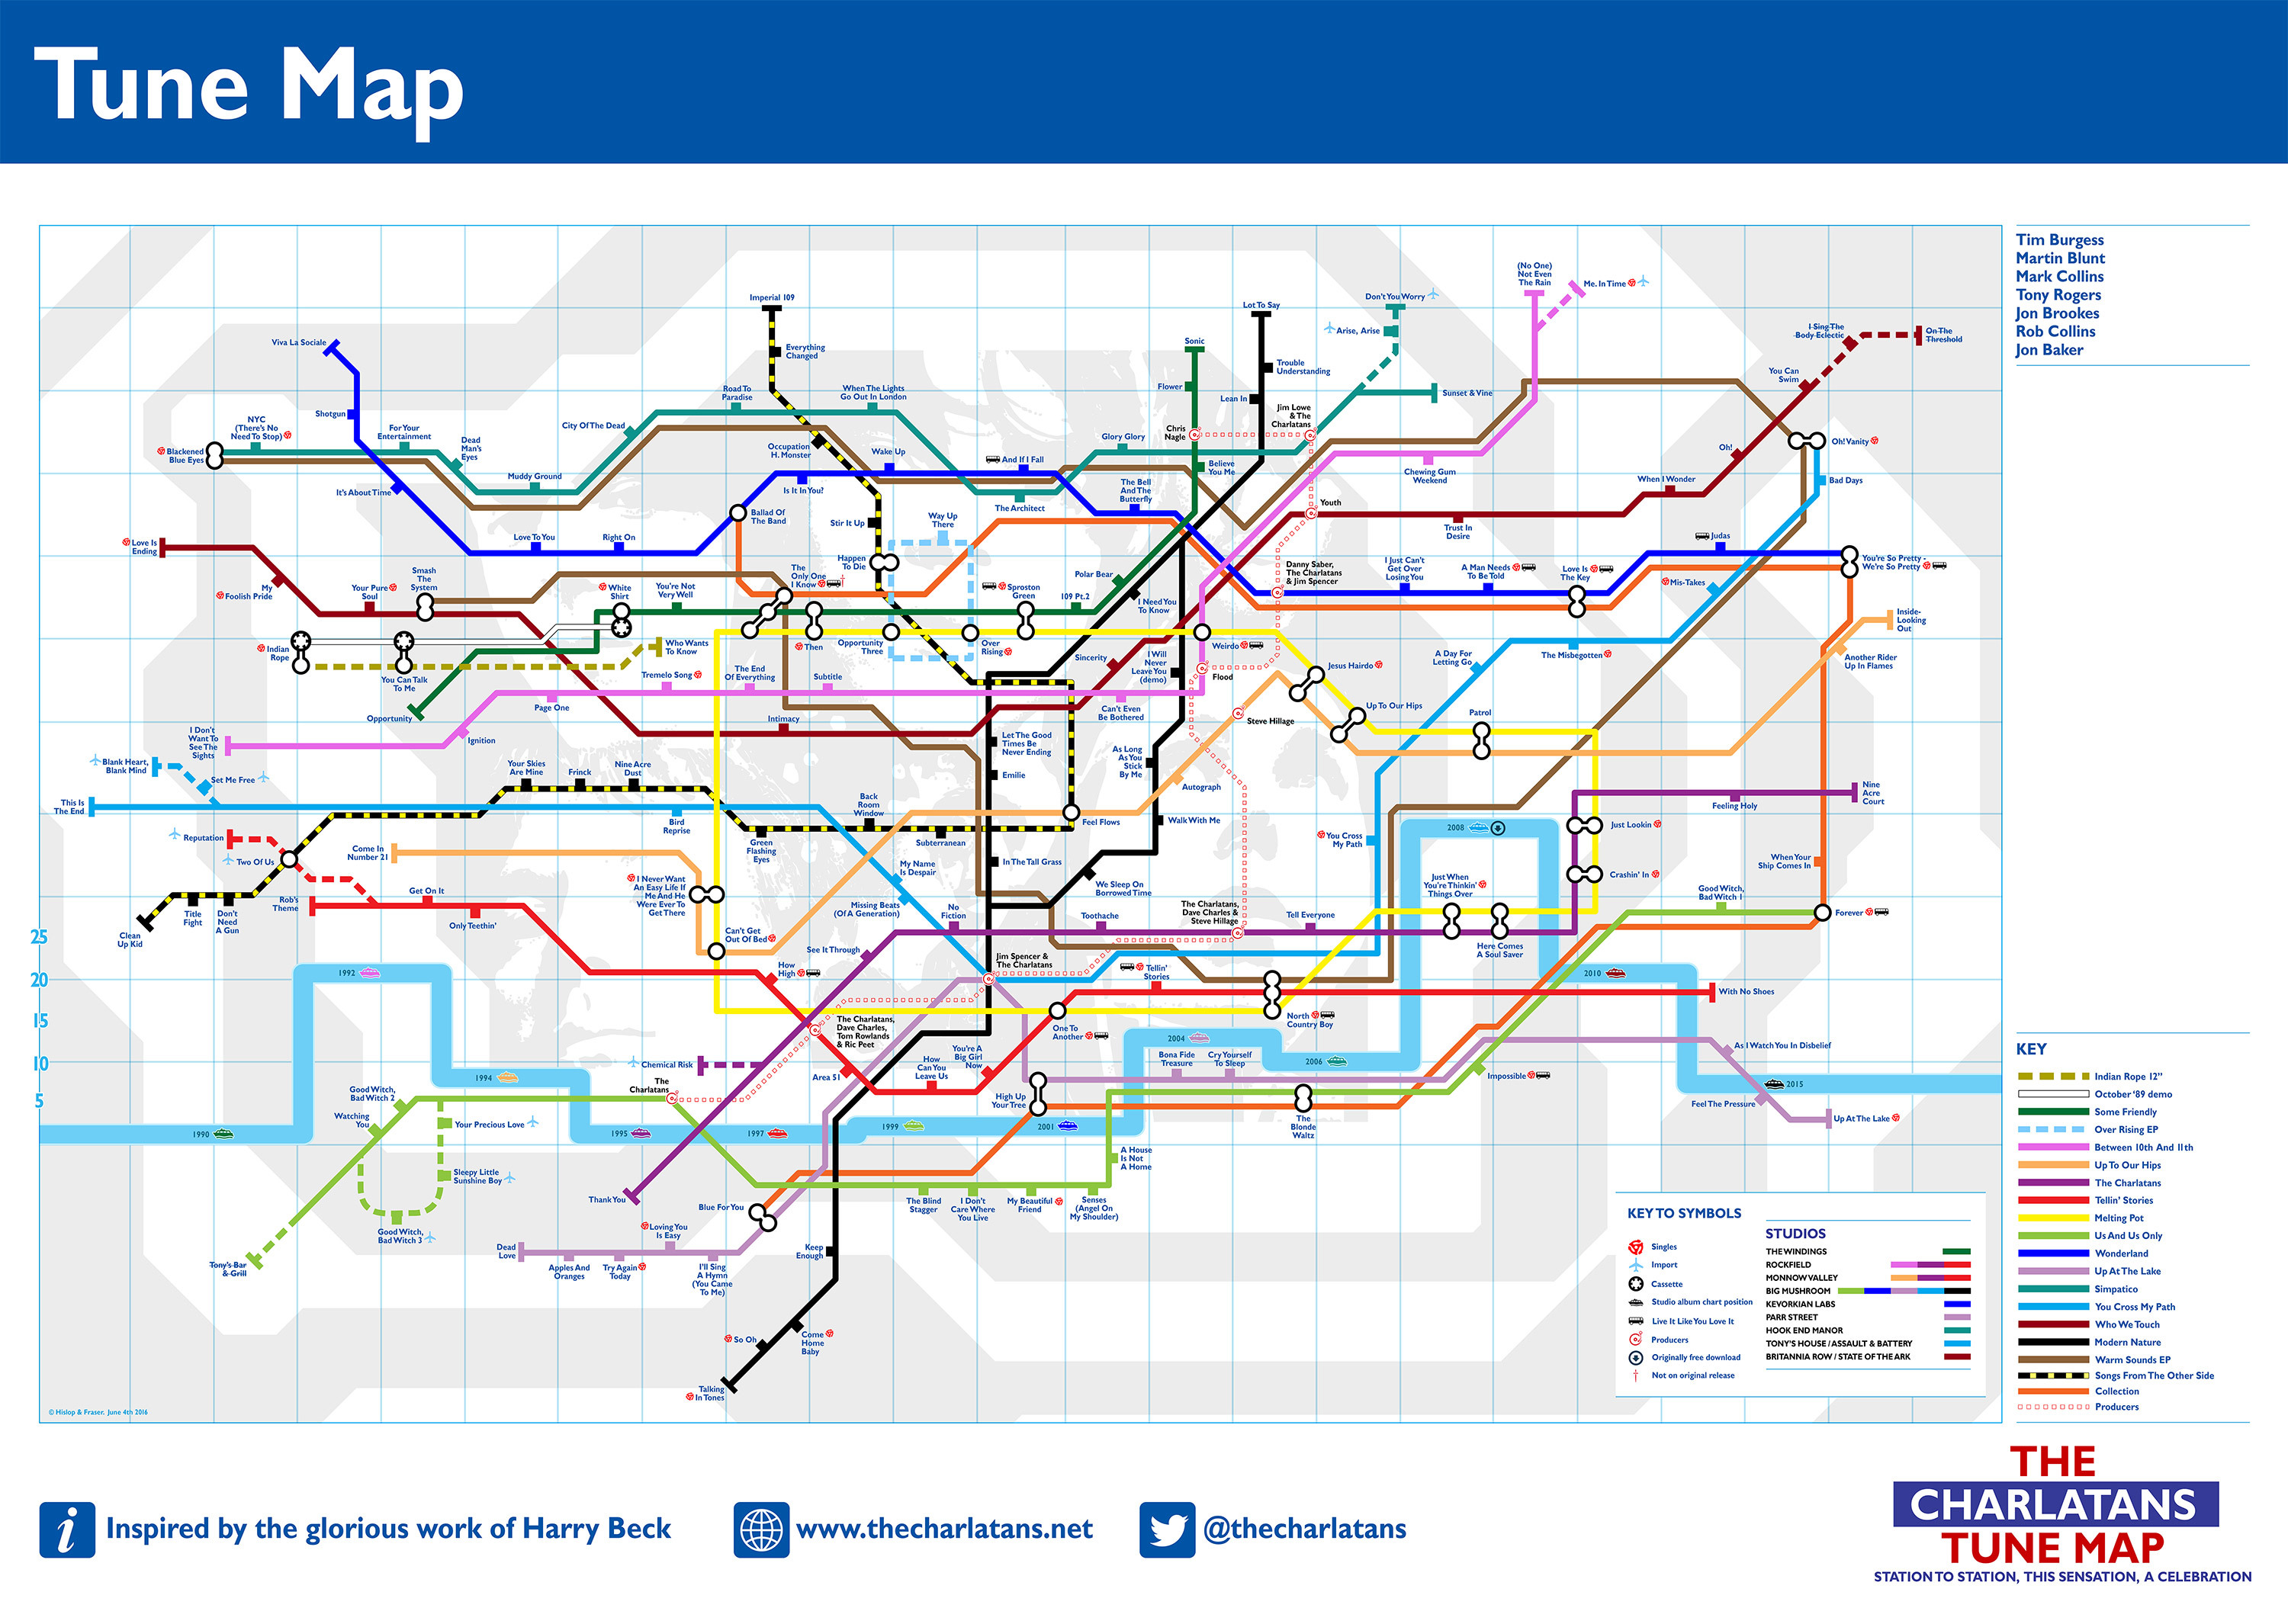 A Rock Star Is Handing Out Limited Edition Tube Maps Tomorrow ...